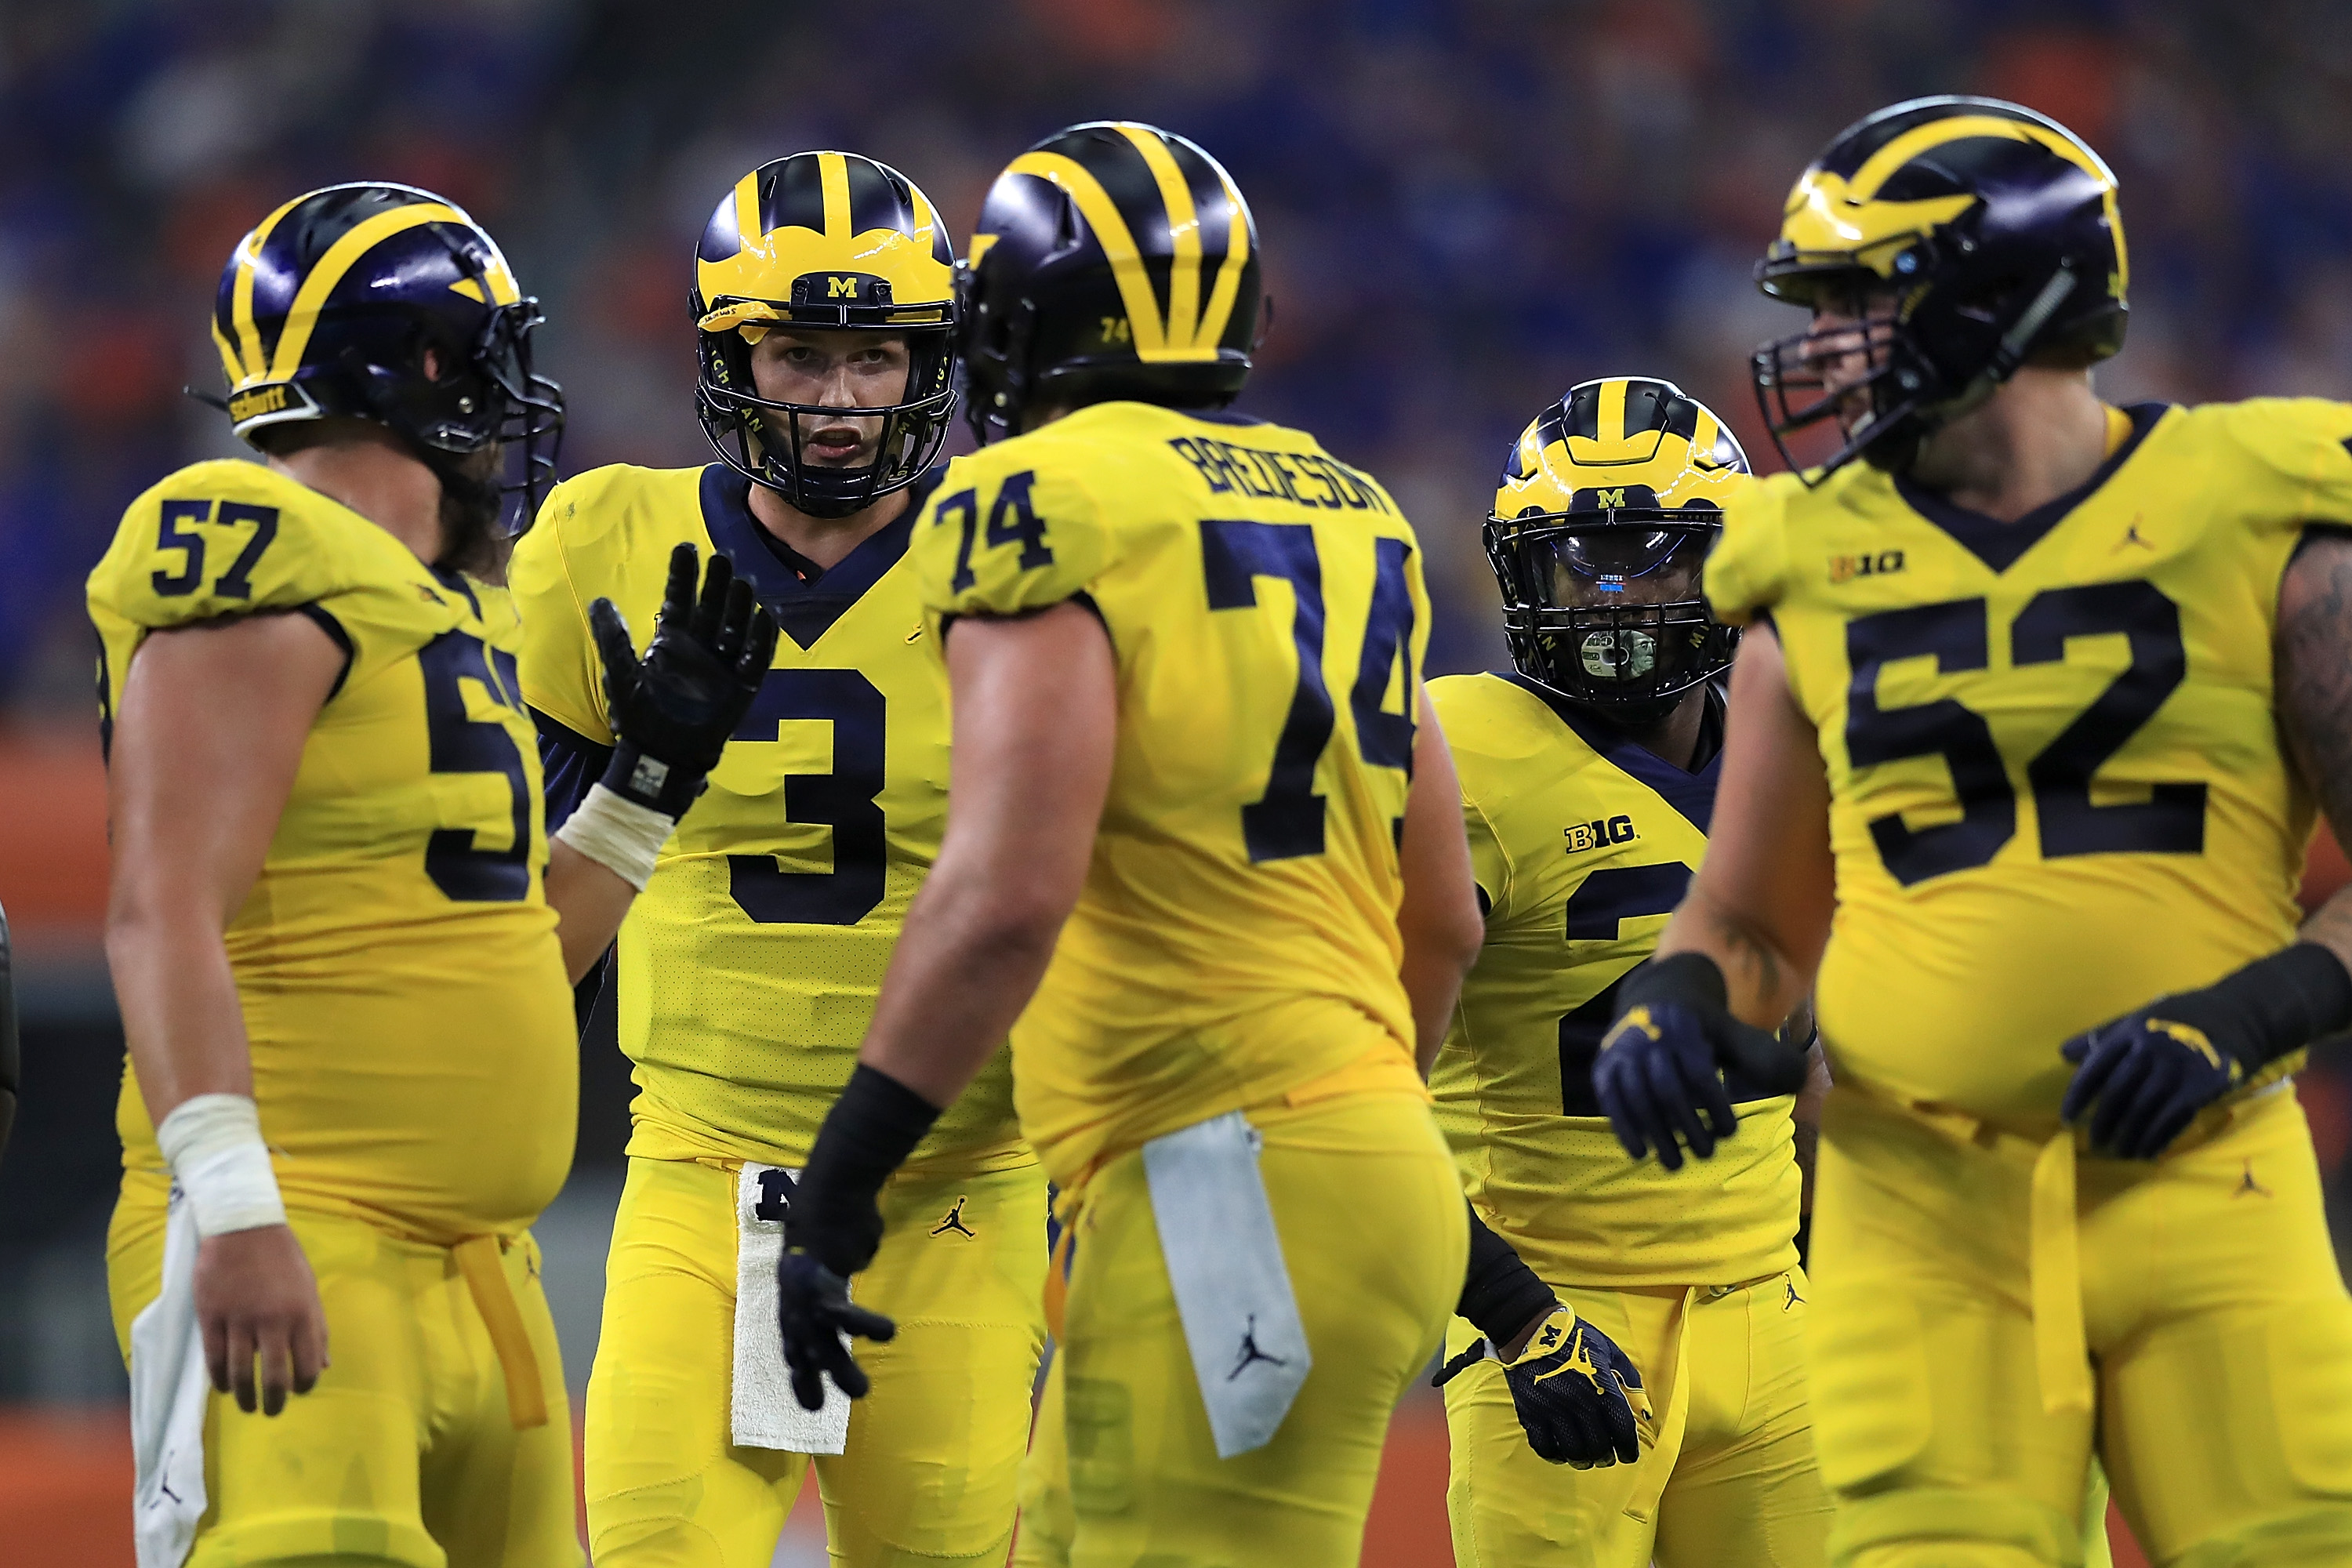 Joey Knight's takeaways from Florida-Michigan